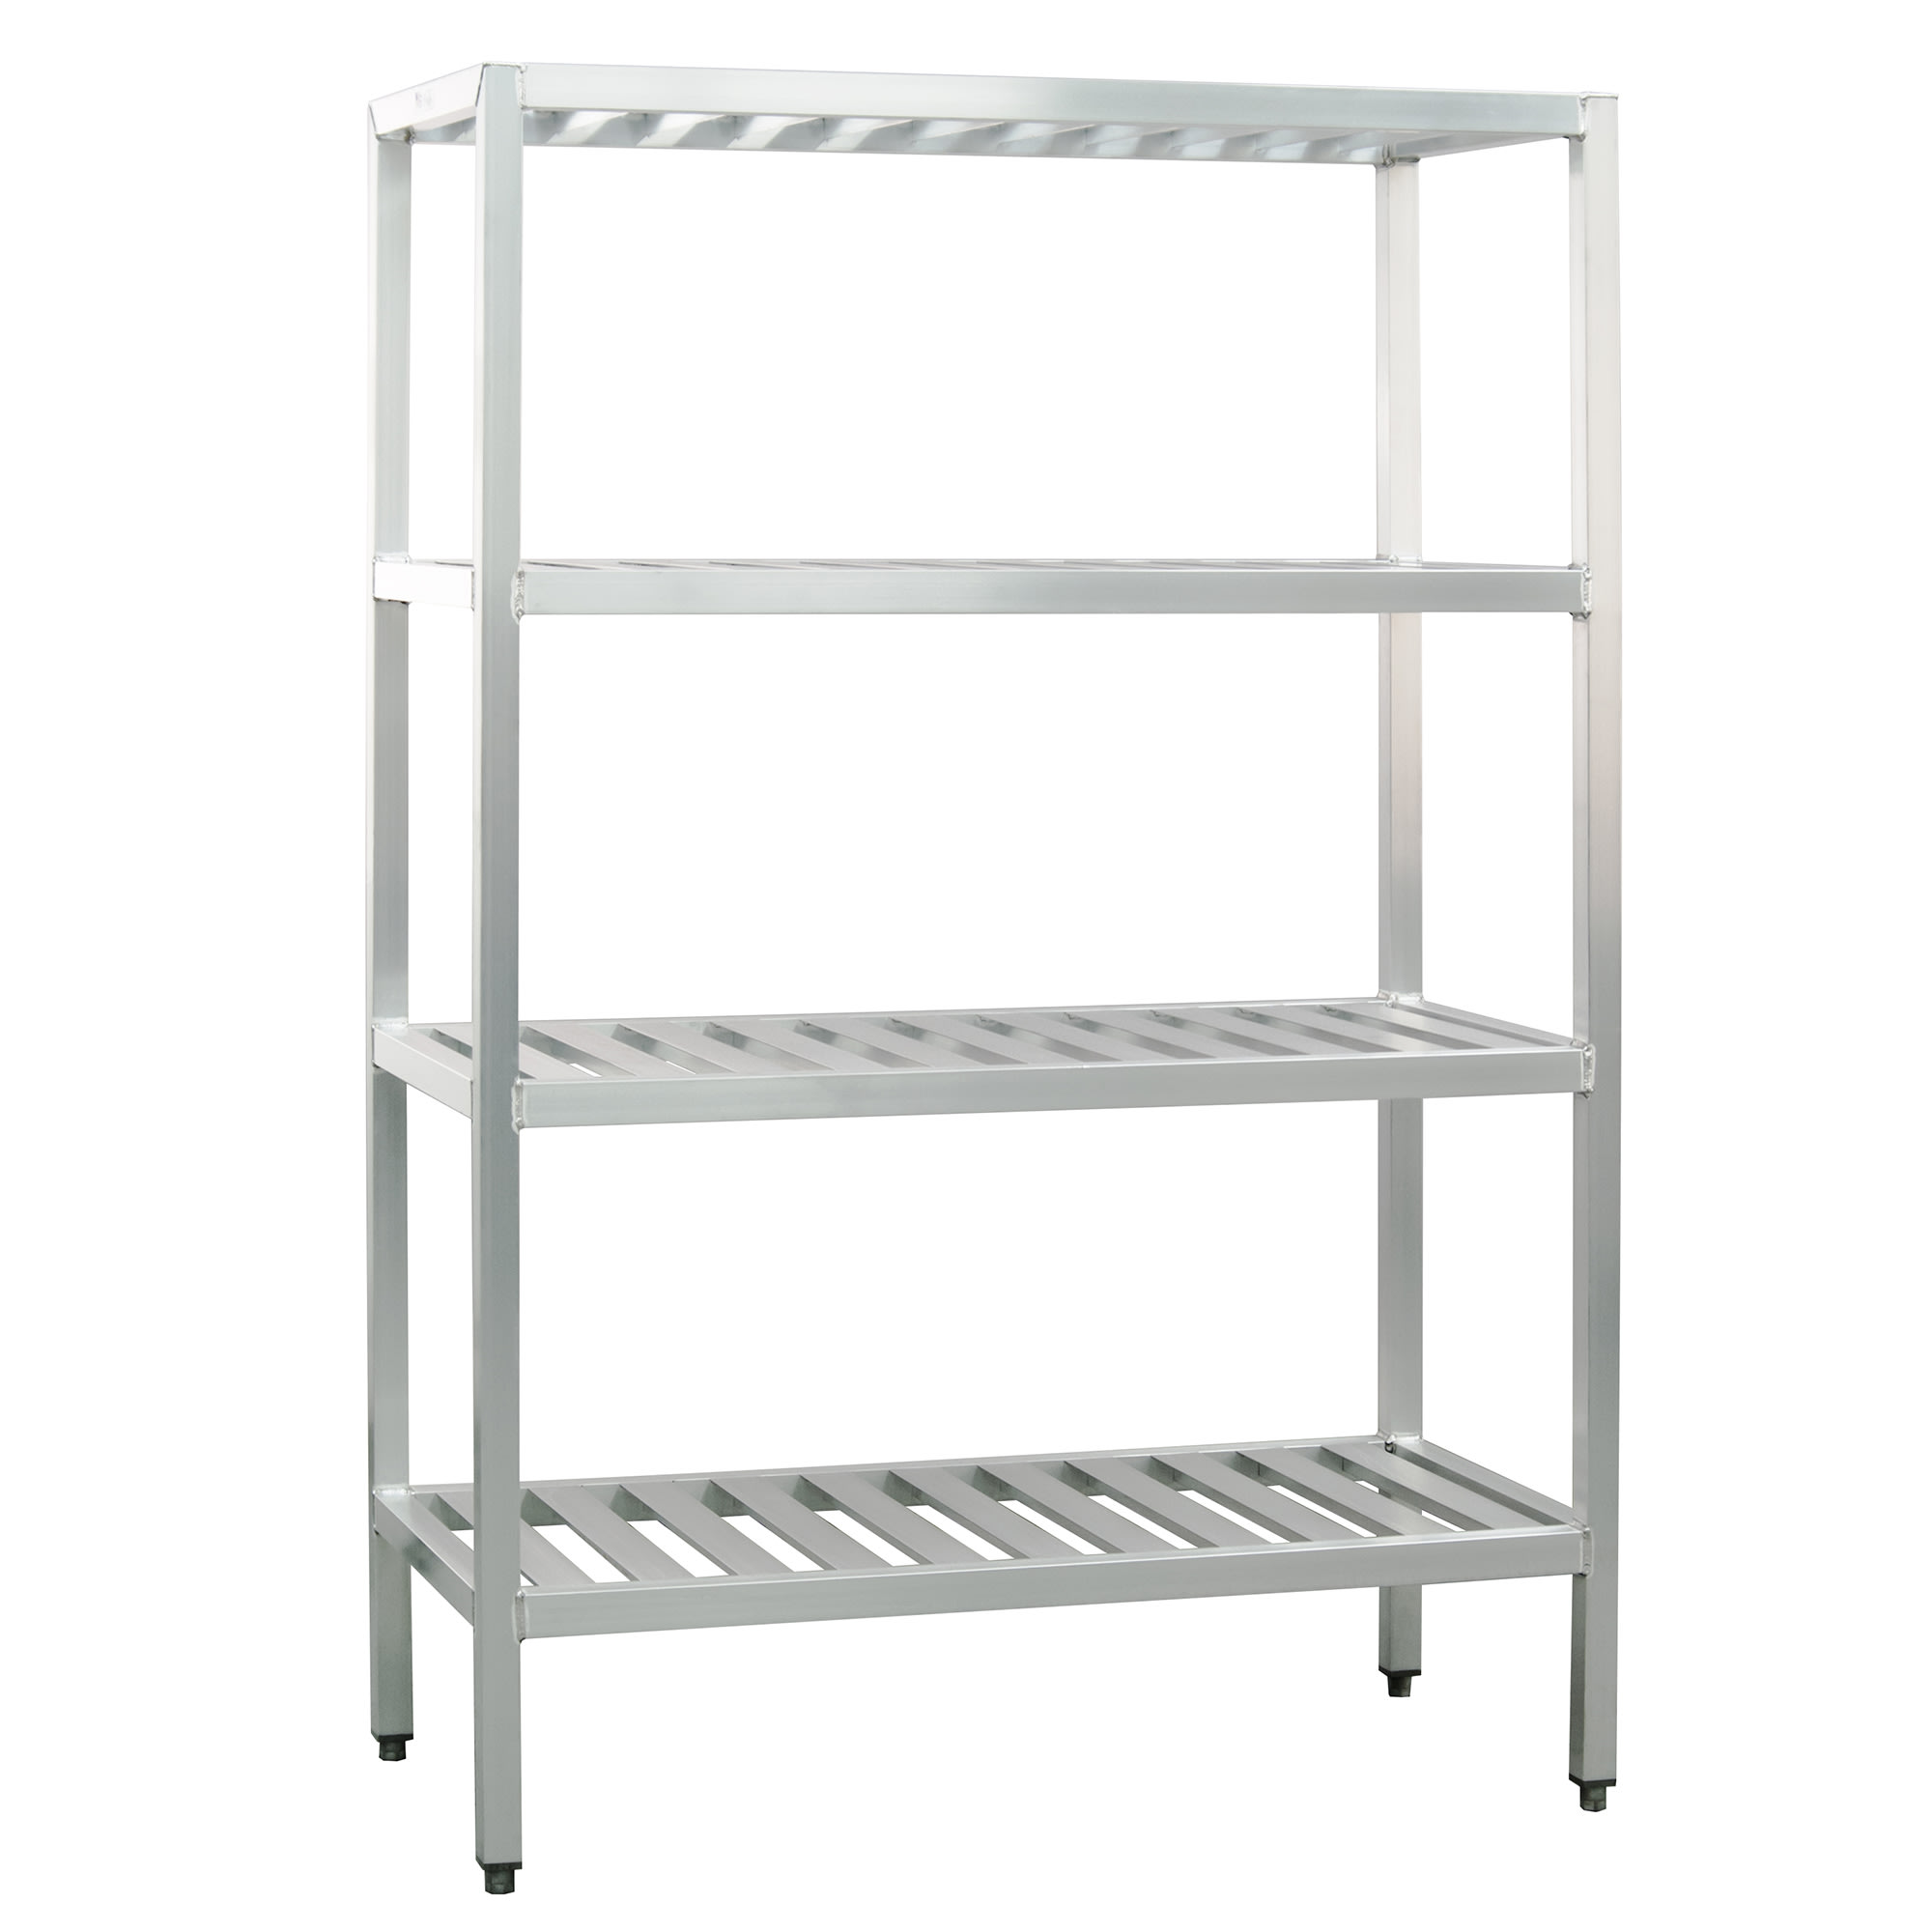 "New Age 1066TB 48"" Heavy-duty Shelving Unit w/ 1000 lb Capacity, Aluminum"